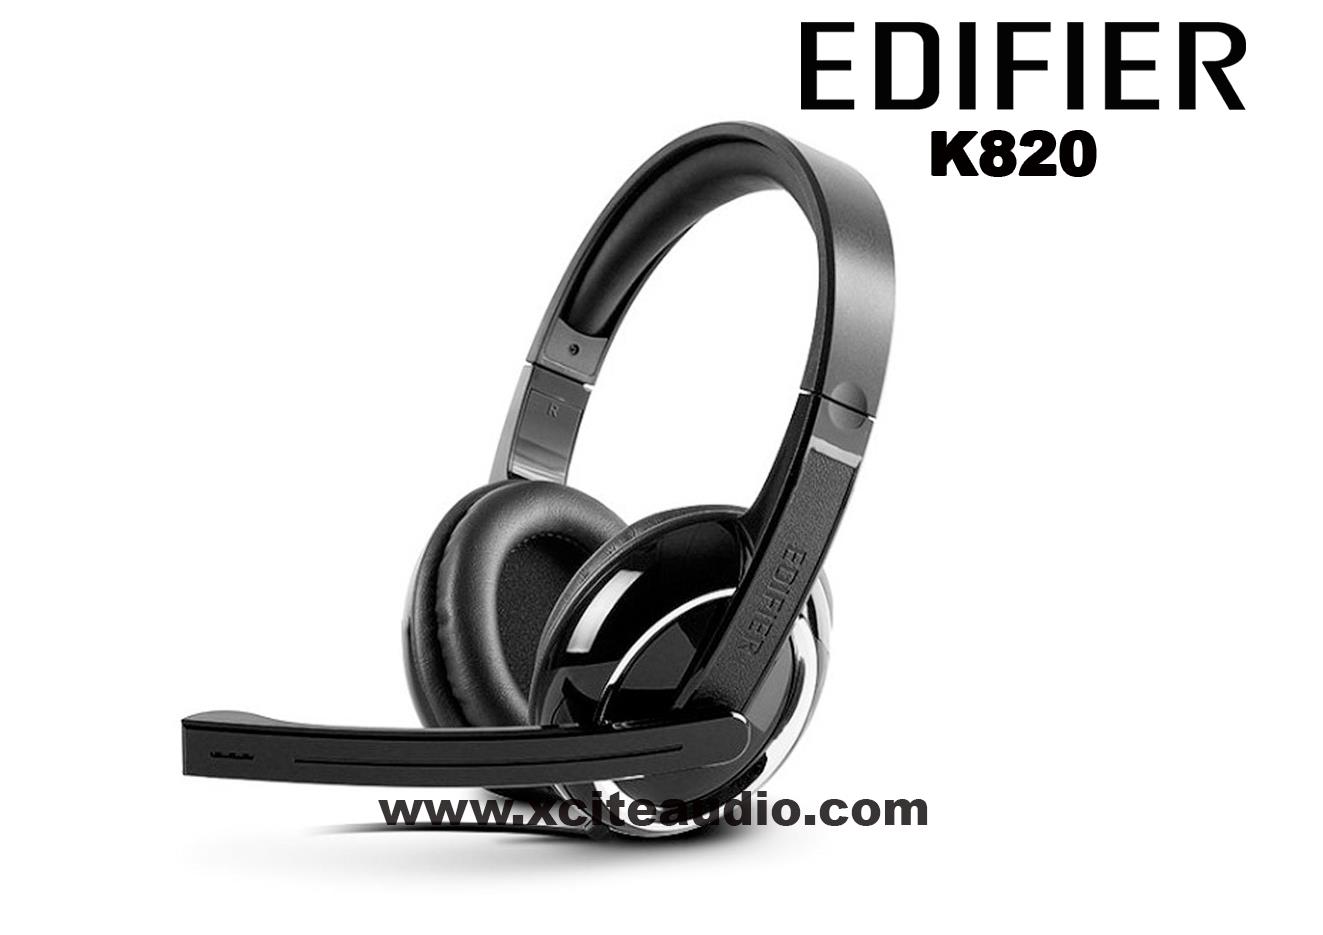 Edifier K820 Noise Canceling Microphone Headphone BLACK